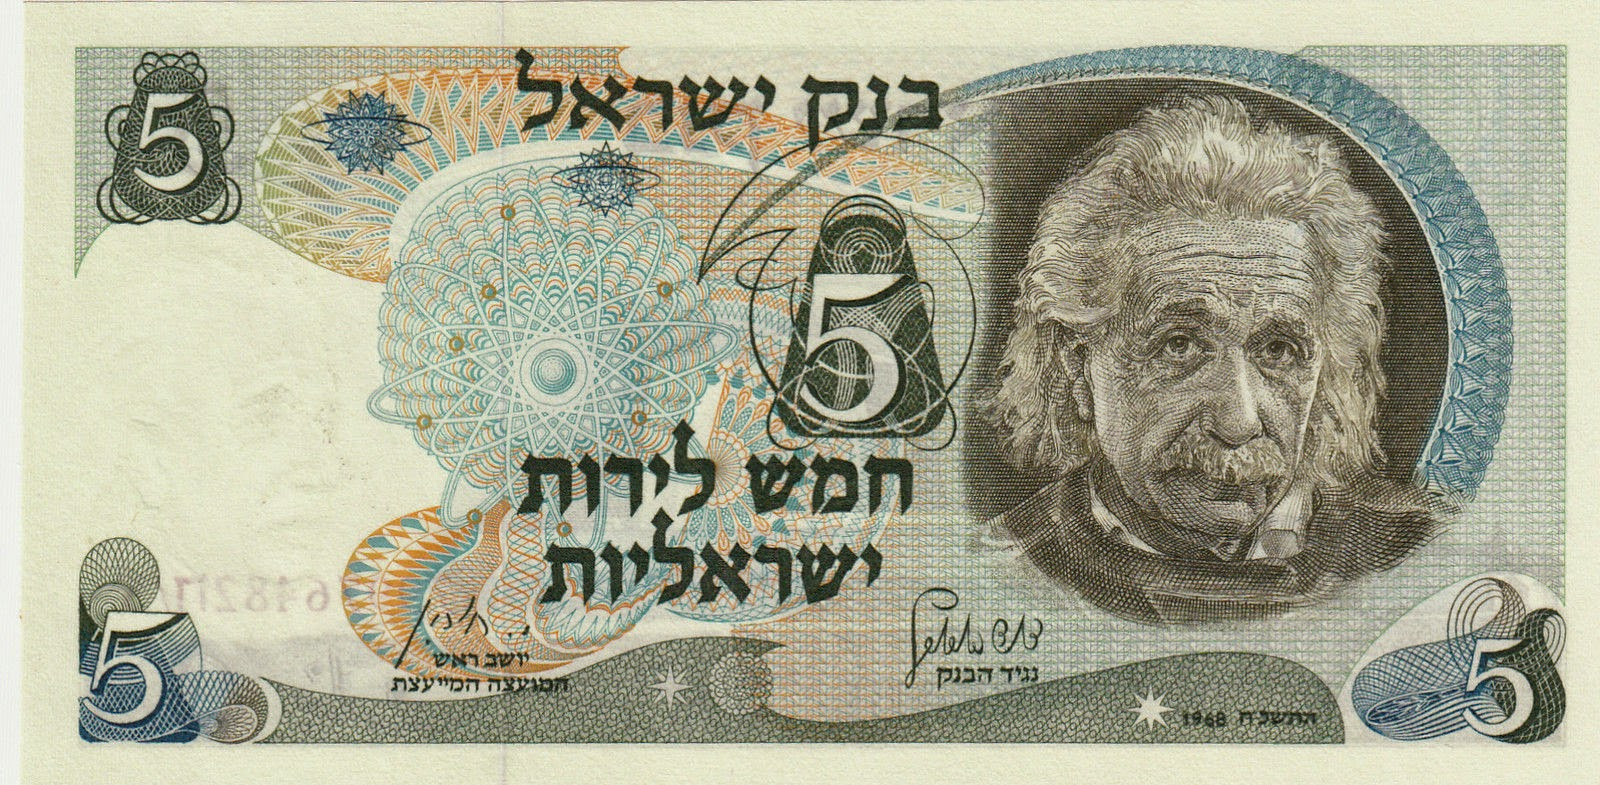 5 Israeli Pounds 1968 Albert Einstein World Banknotes & Coins Pictures   Old Money, Foreign Currency Notes, World Paper Money Museum